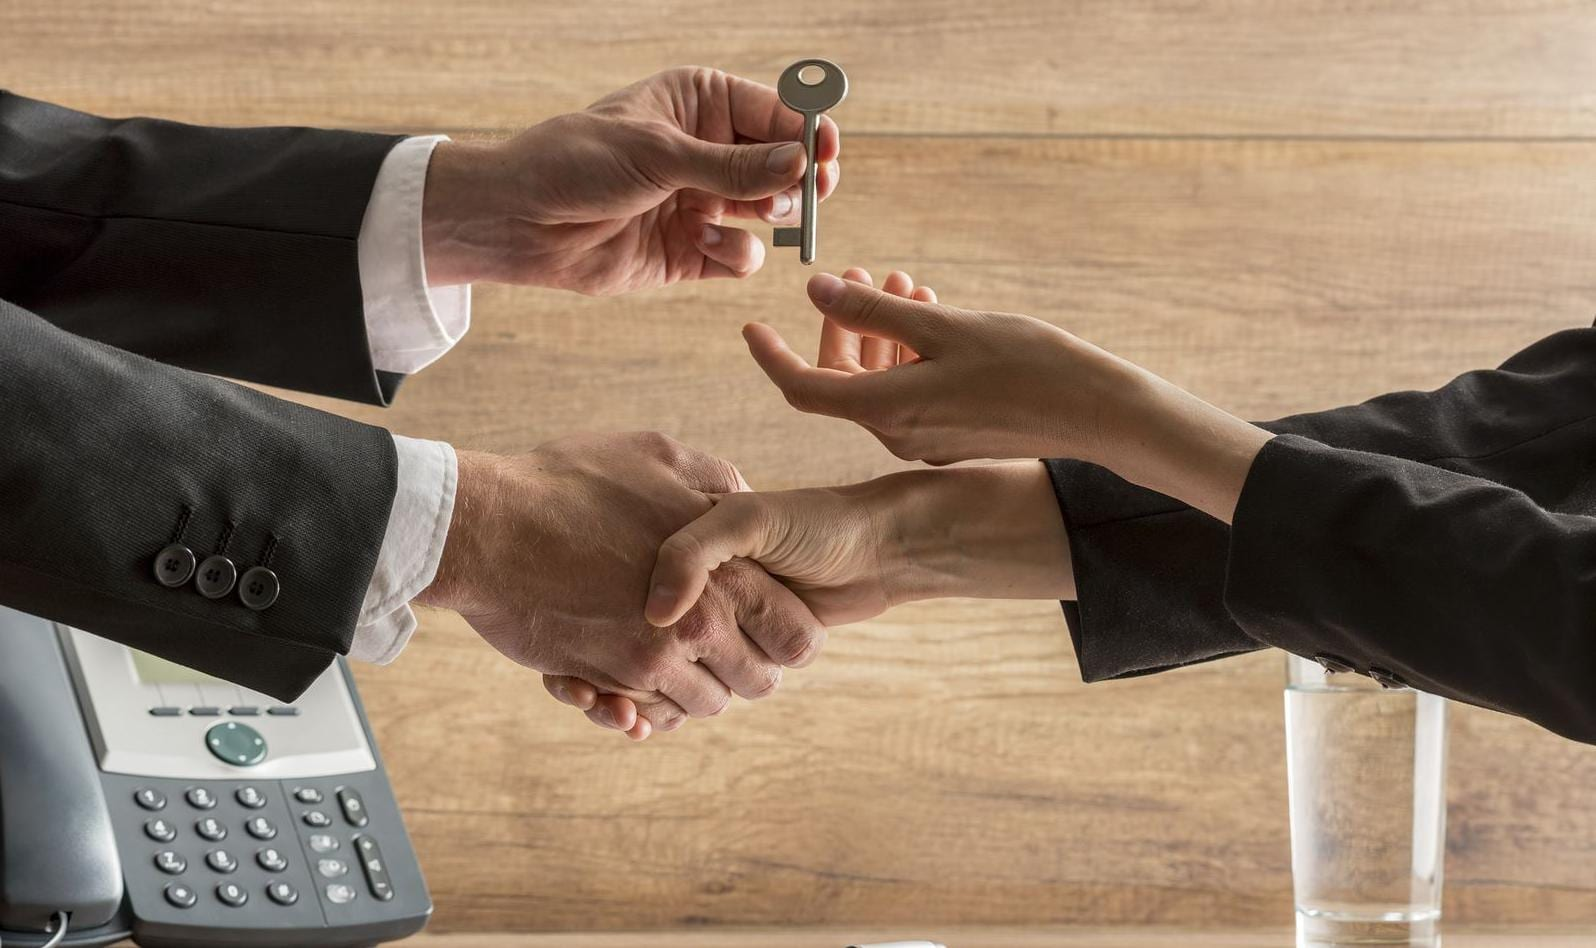 Should Real Estate Agents Work with Investors or Homebuyers?